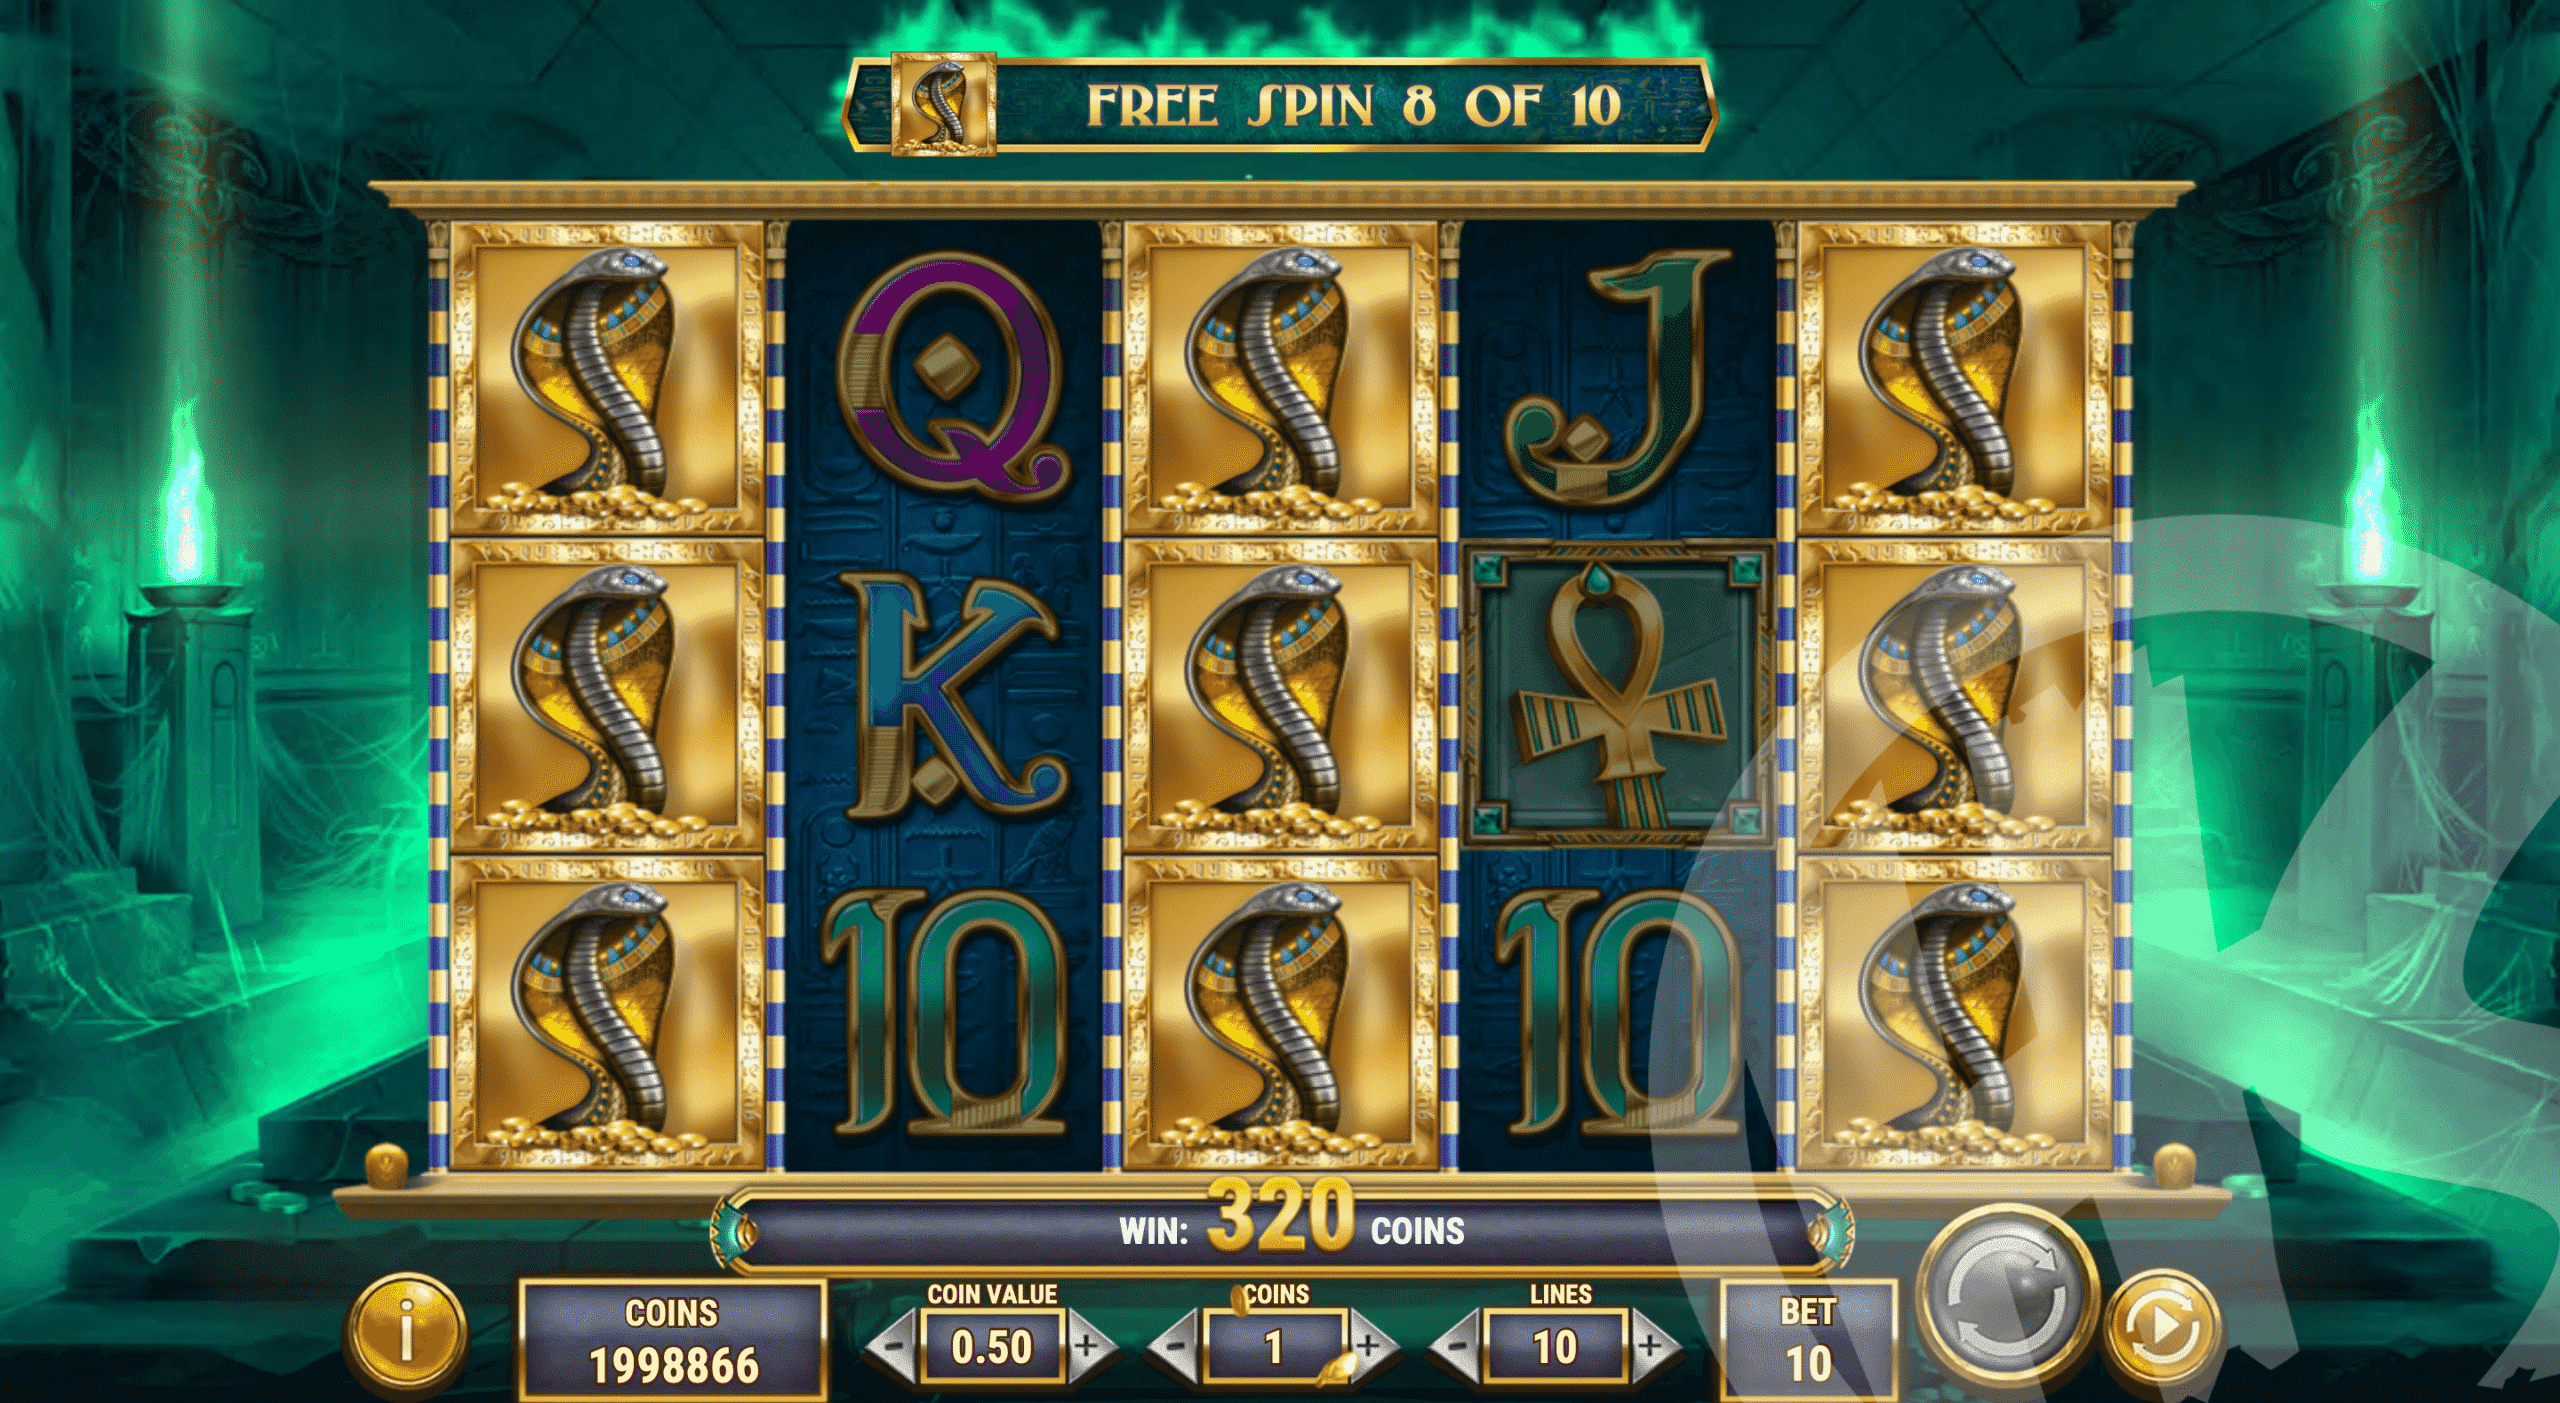 Ghost of Dead Free Spins